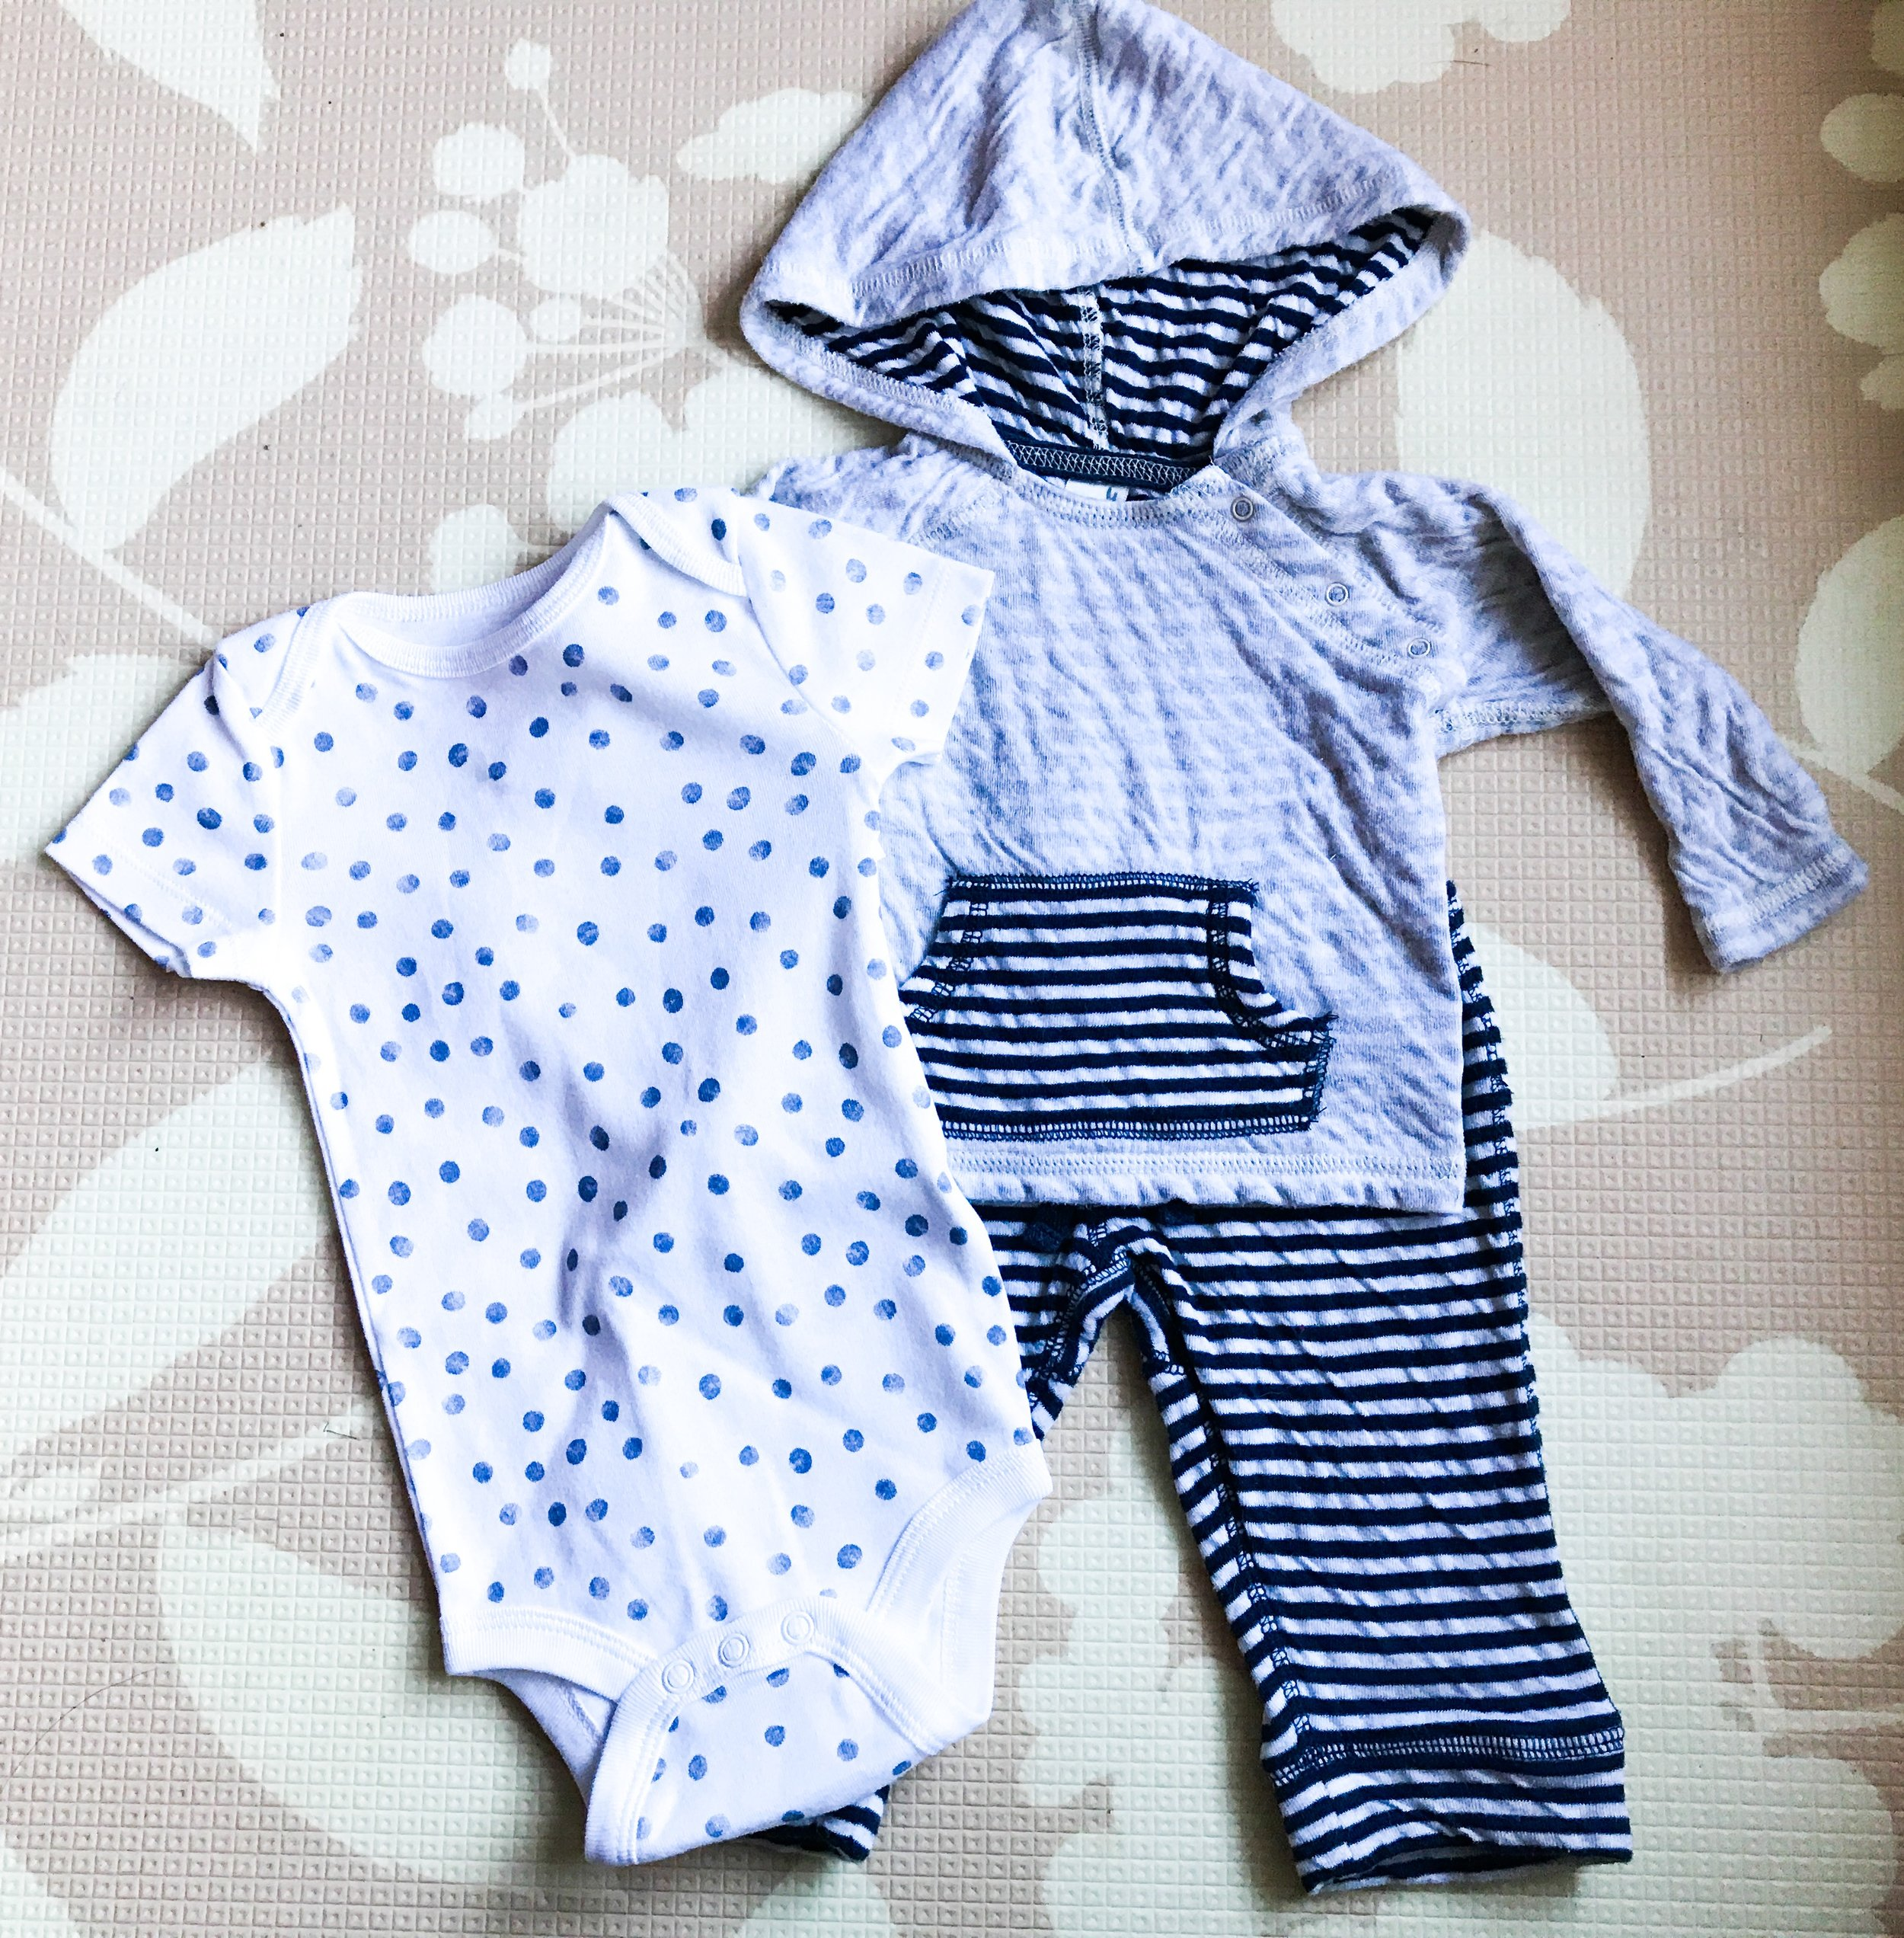 Preparing to have a baby boy. Shopping for a baby boy.